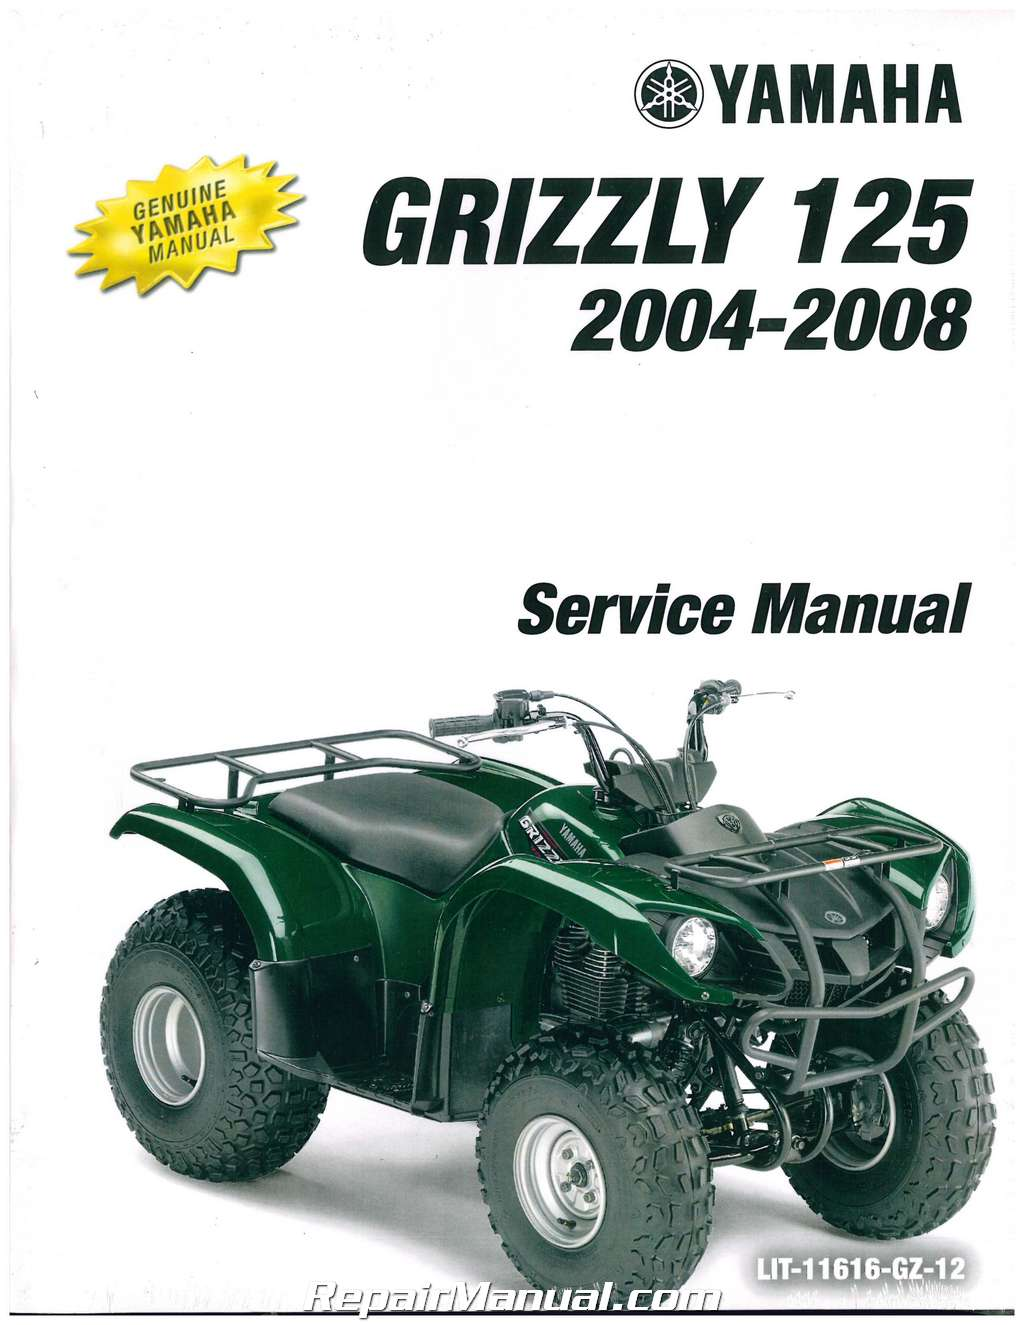 2004 2013 yamaha yfm125g grizzly 125 automatic service manual lit rh ebay com 2004 yamaha grizzly 125 owners manual yamaha grizzly 125 service manual download